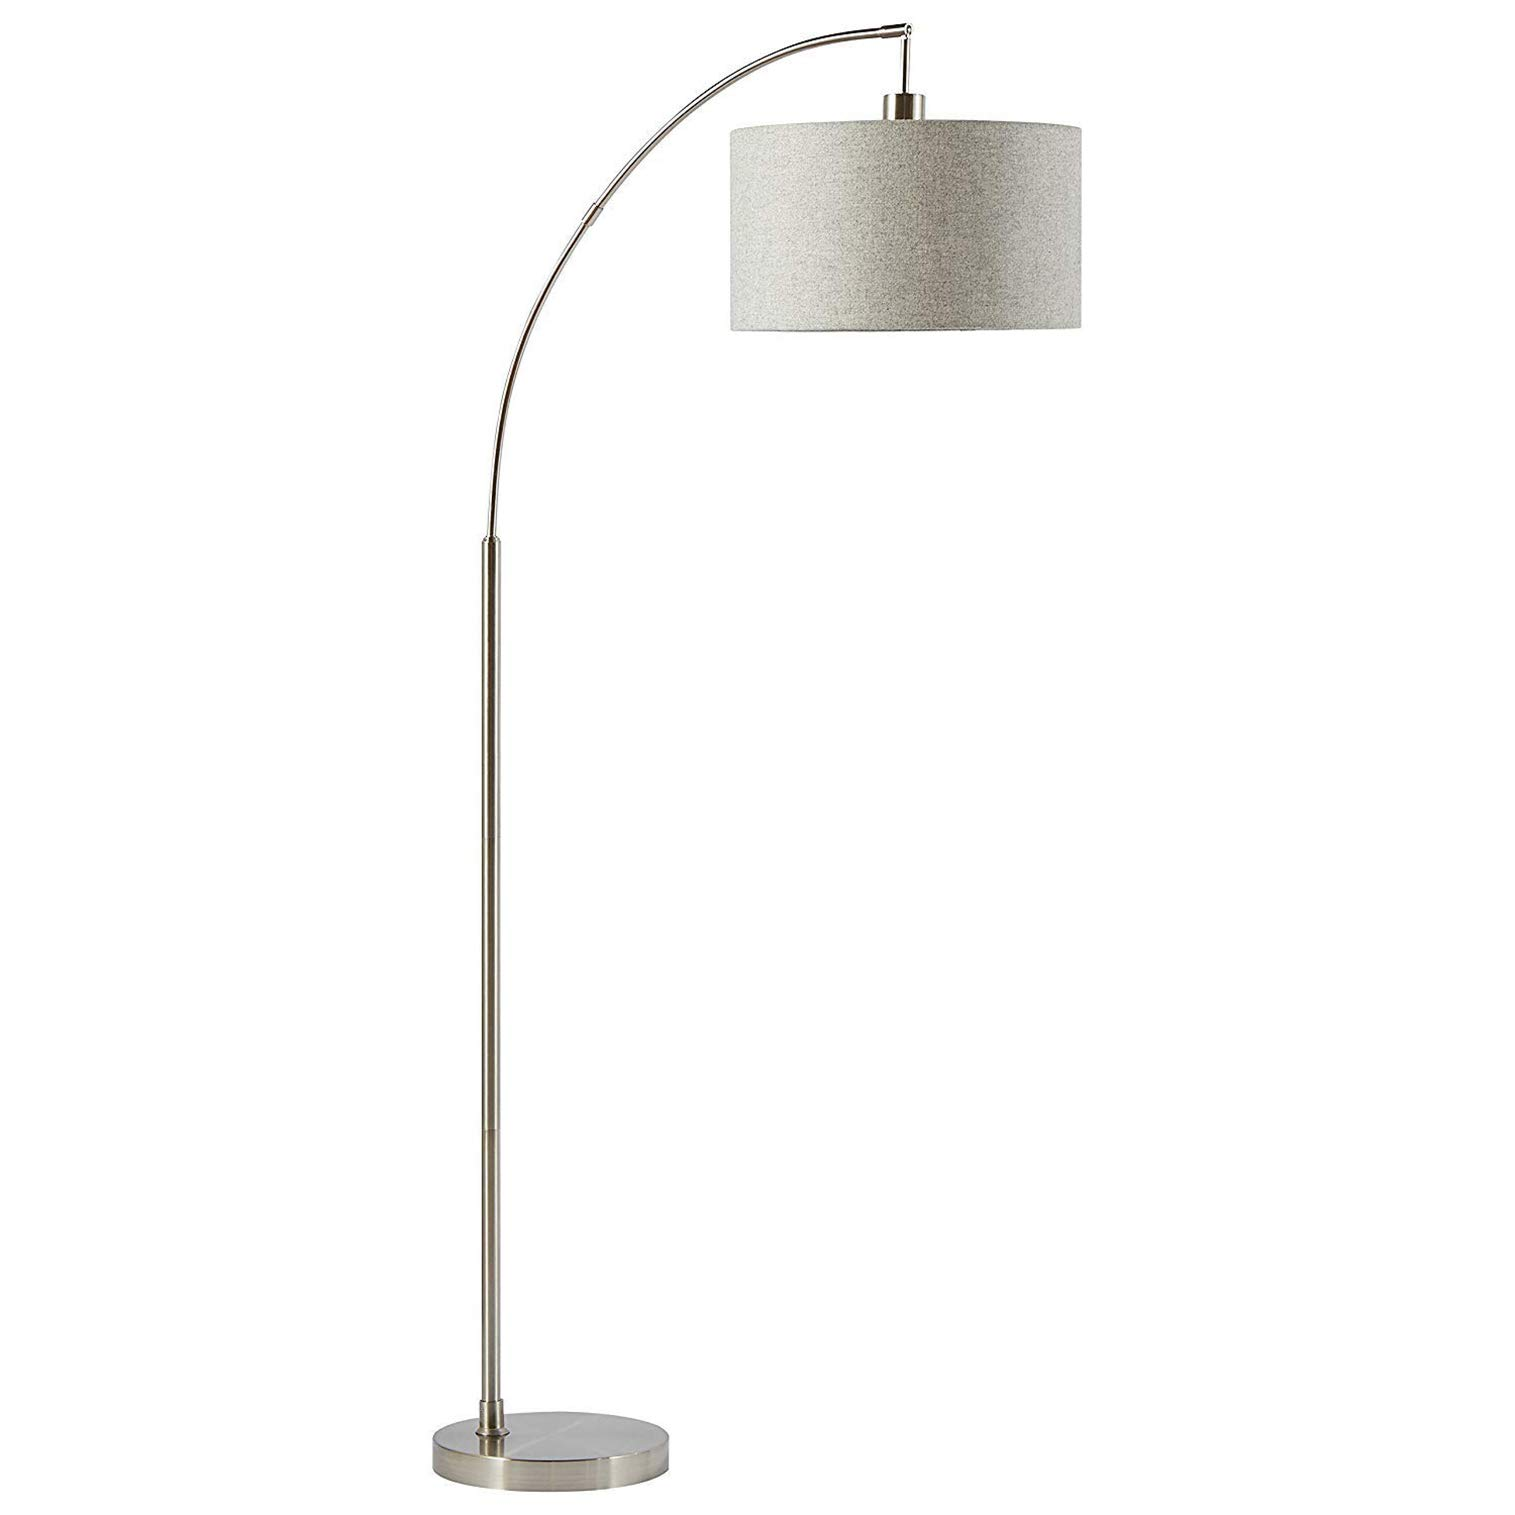 Rivet Modern Arc Floor Lamp with Bulb and Fabric Shade, 69''H, Steel by Rivet